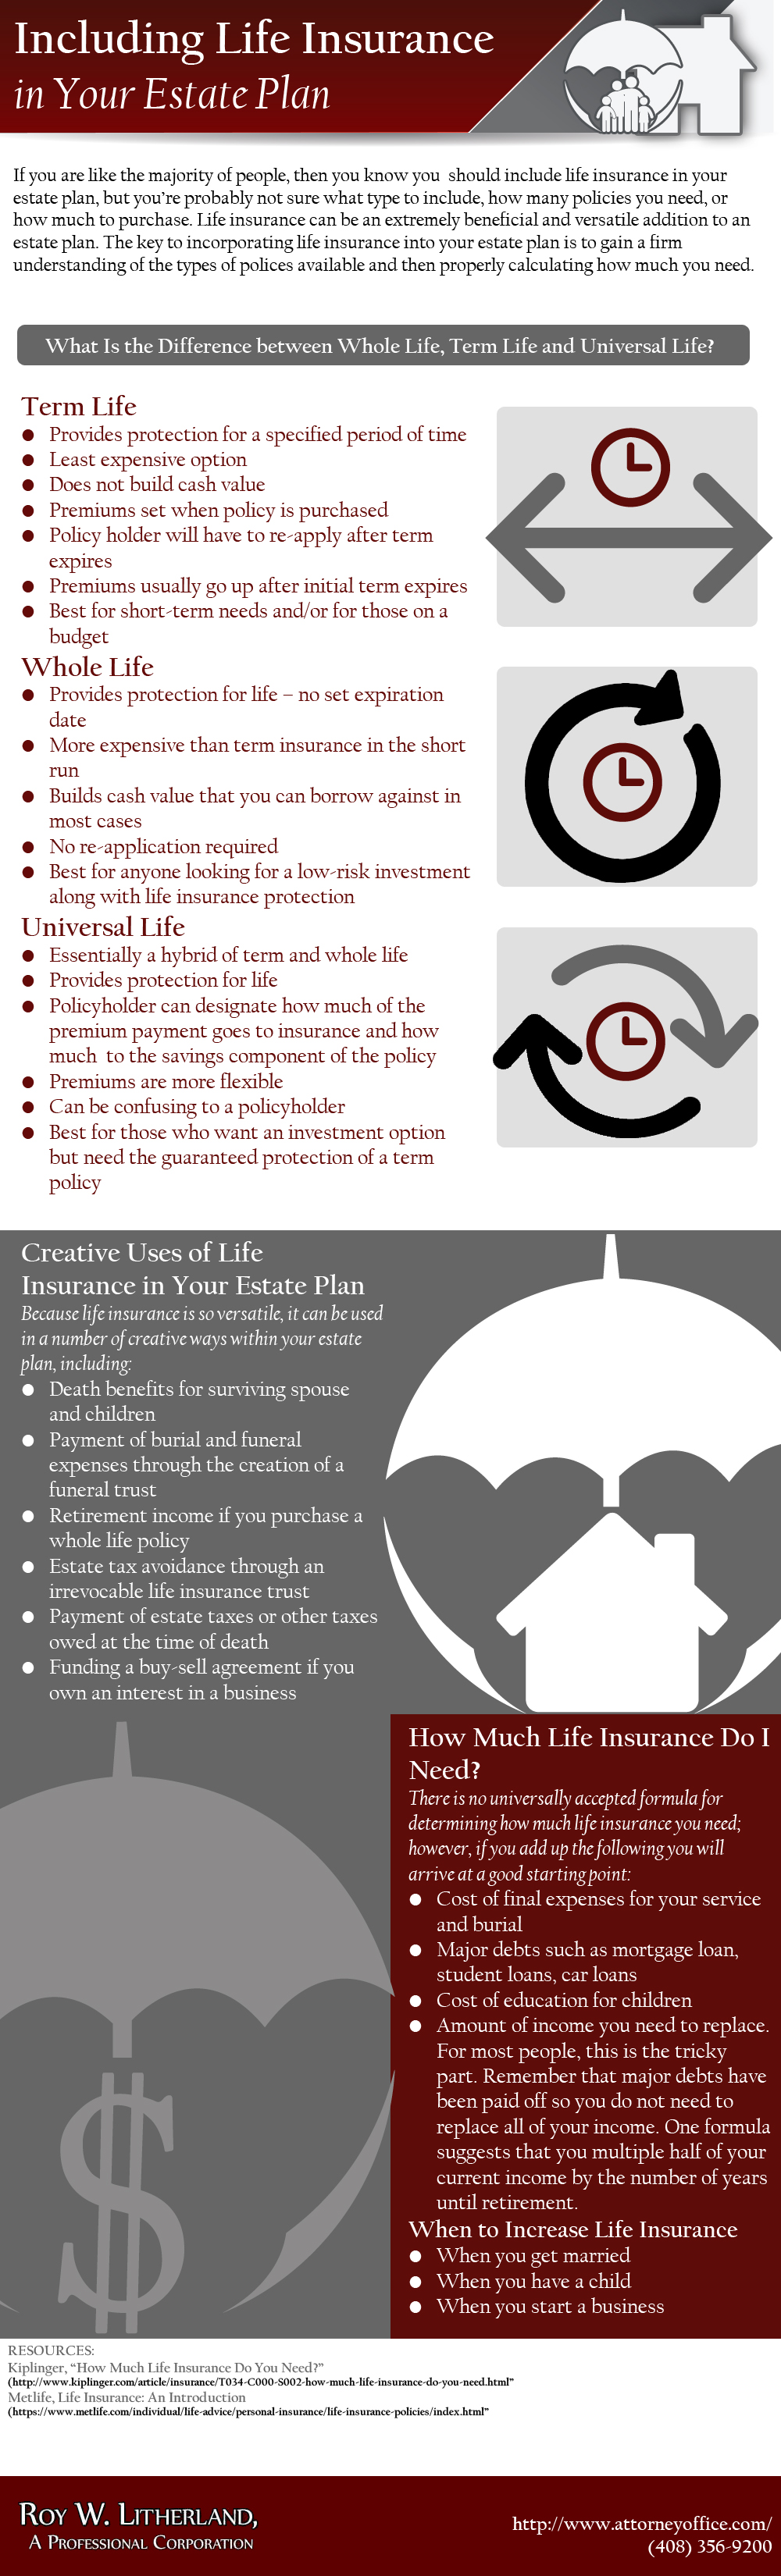 life insurance in your estate plan